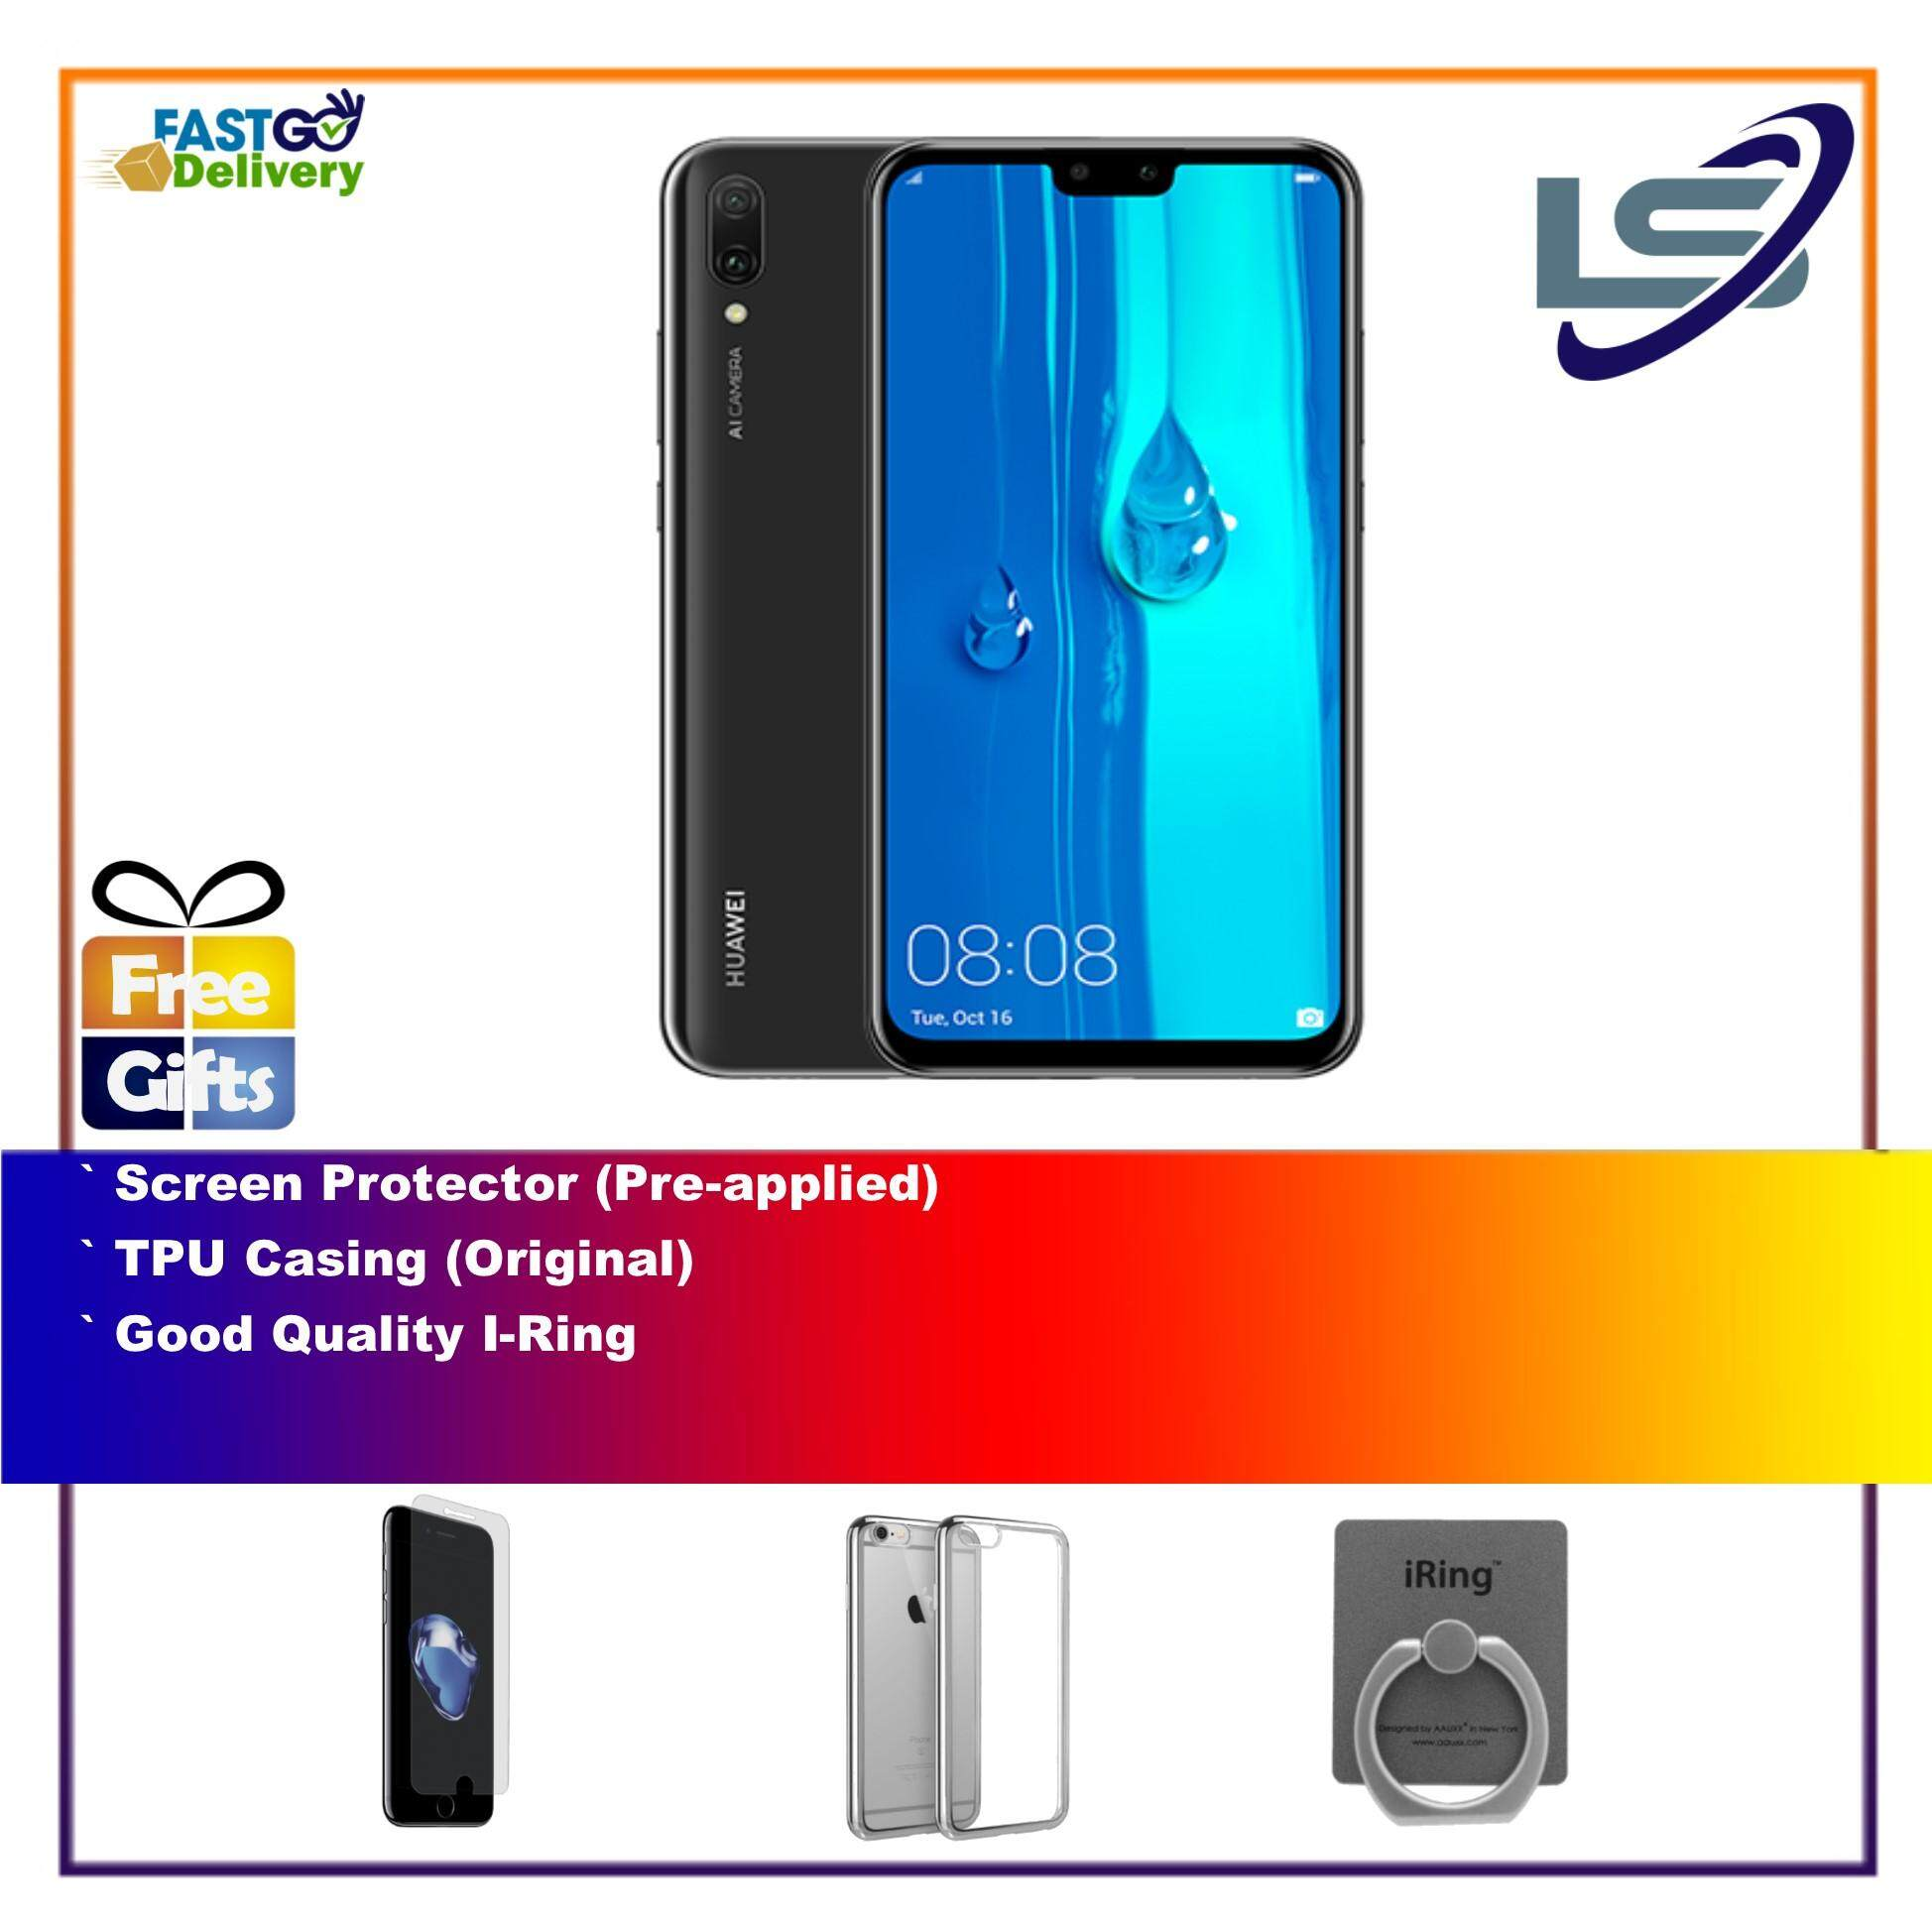 Huawei Y9 (2019) Price in Malaysia & Specs | TechNave